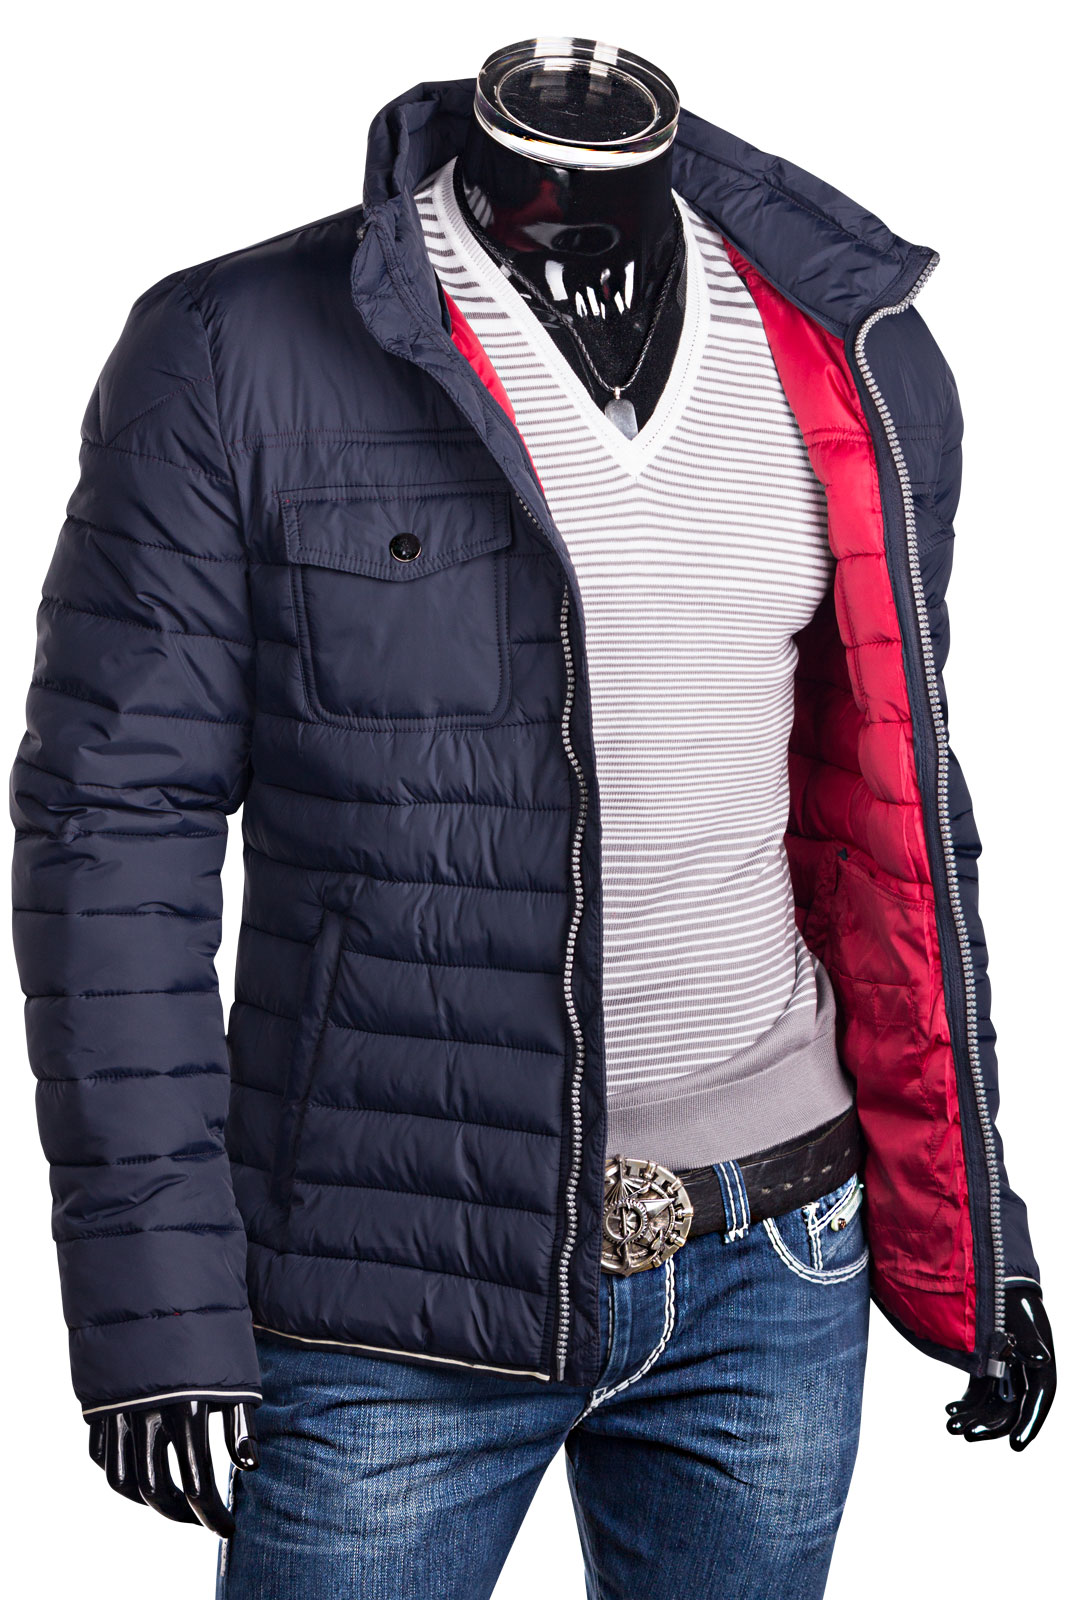 herren steppjacke winter jacke daunen look mantel kapuze bergangsjacke zip ebay. Black Bedroom Furniture Sets. Home Design Ideas